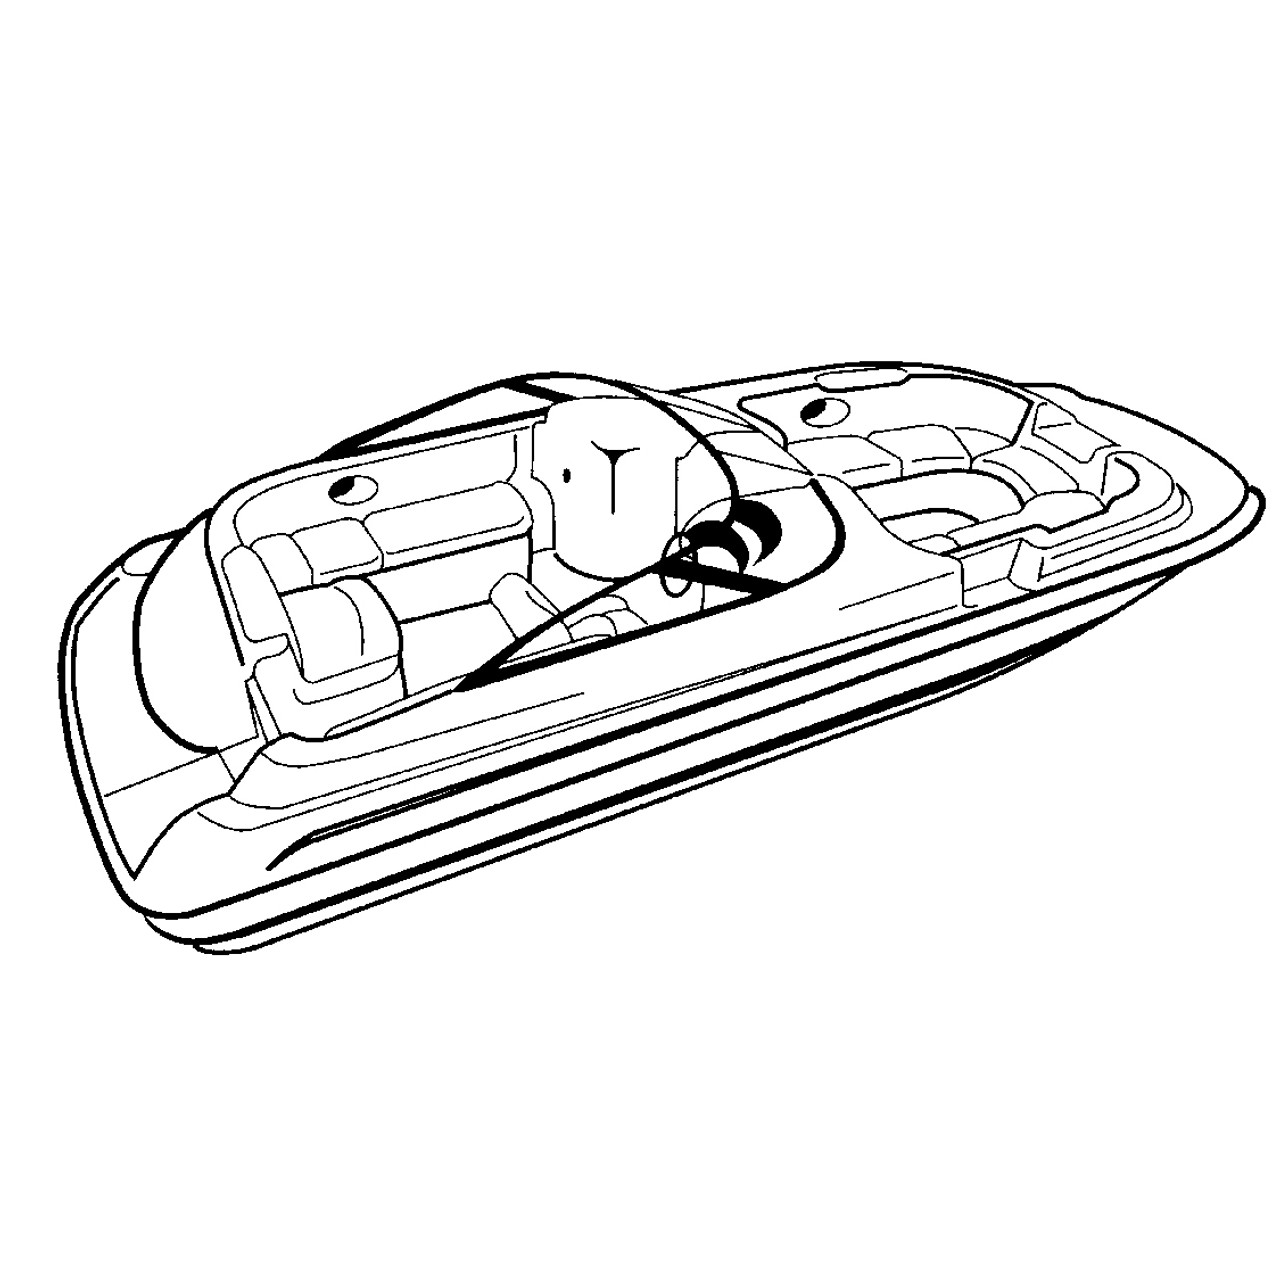 cover fits deck boat with walk thru windshield or side console [ 1125 x 1125 Pixel ]